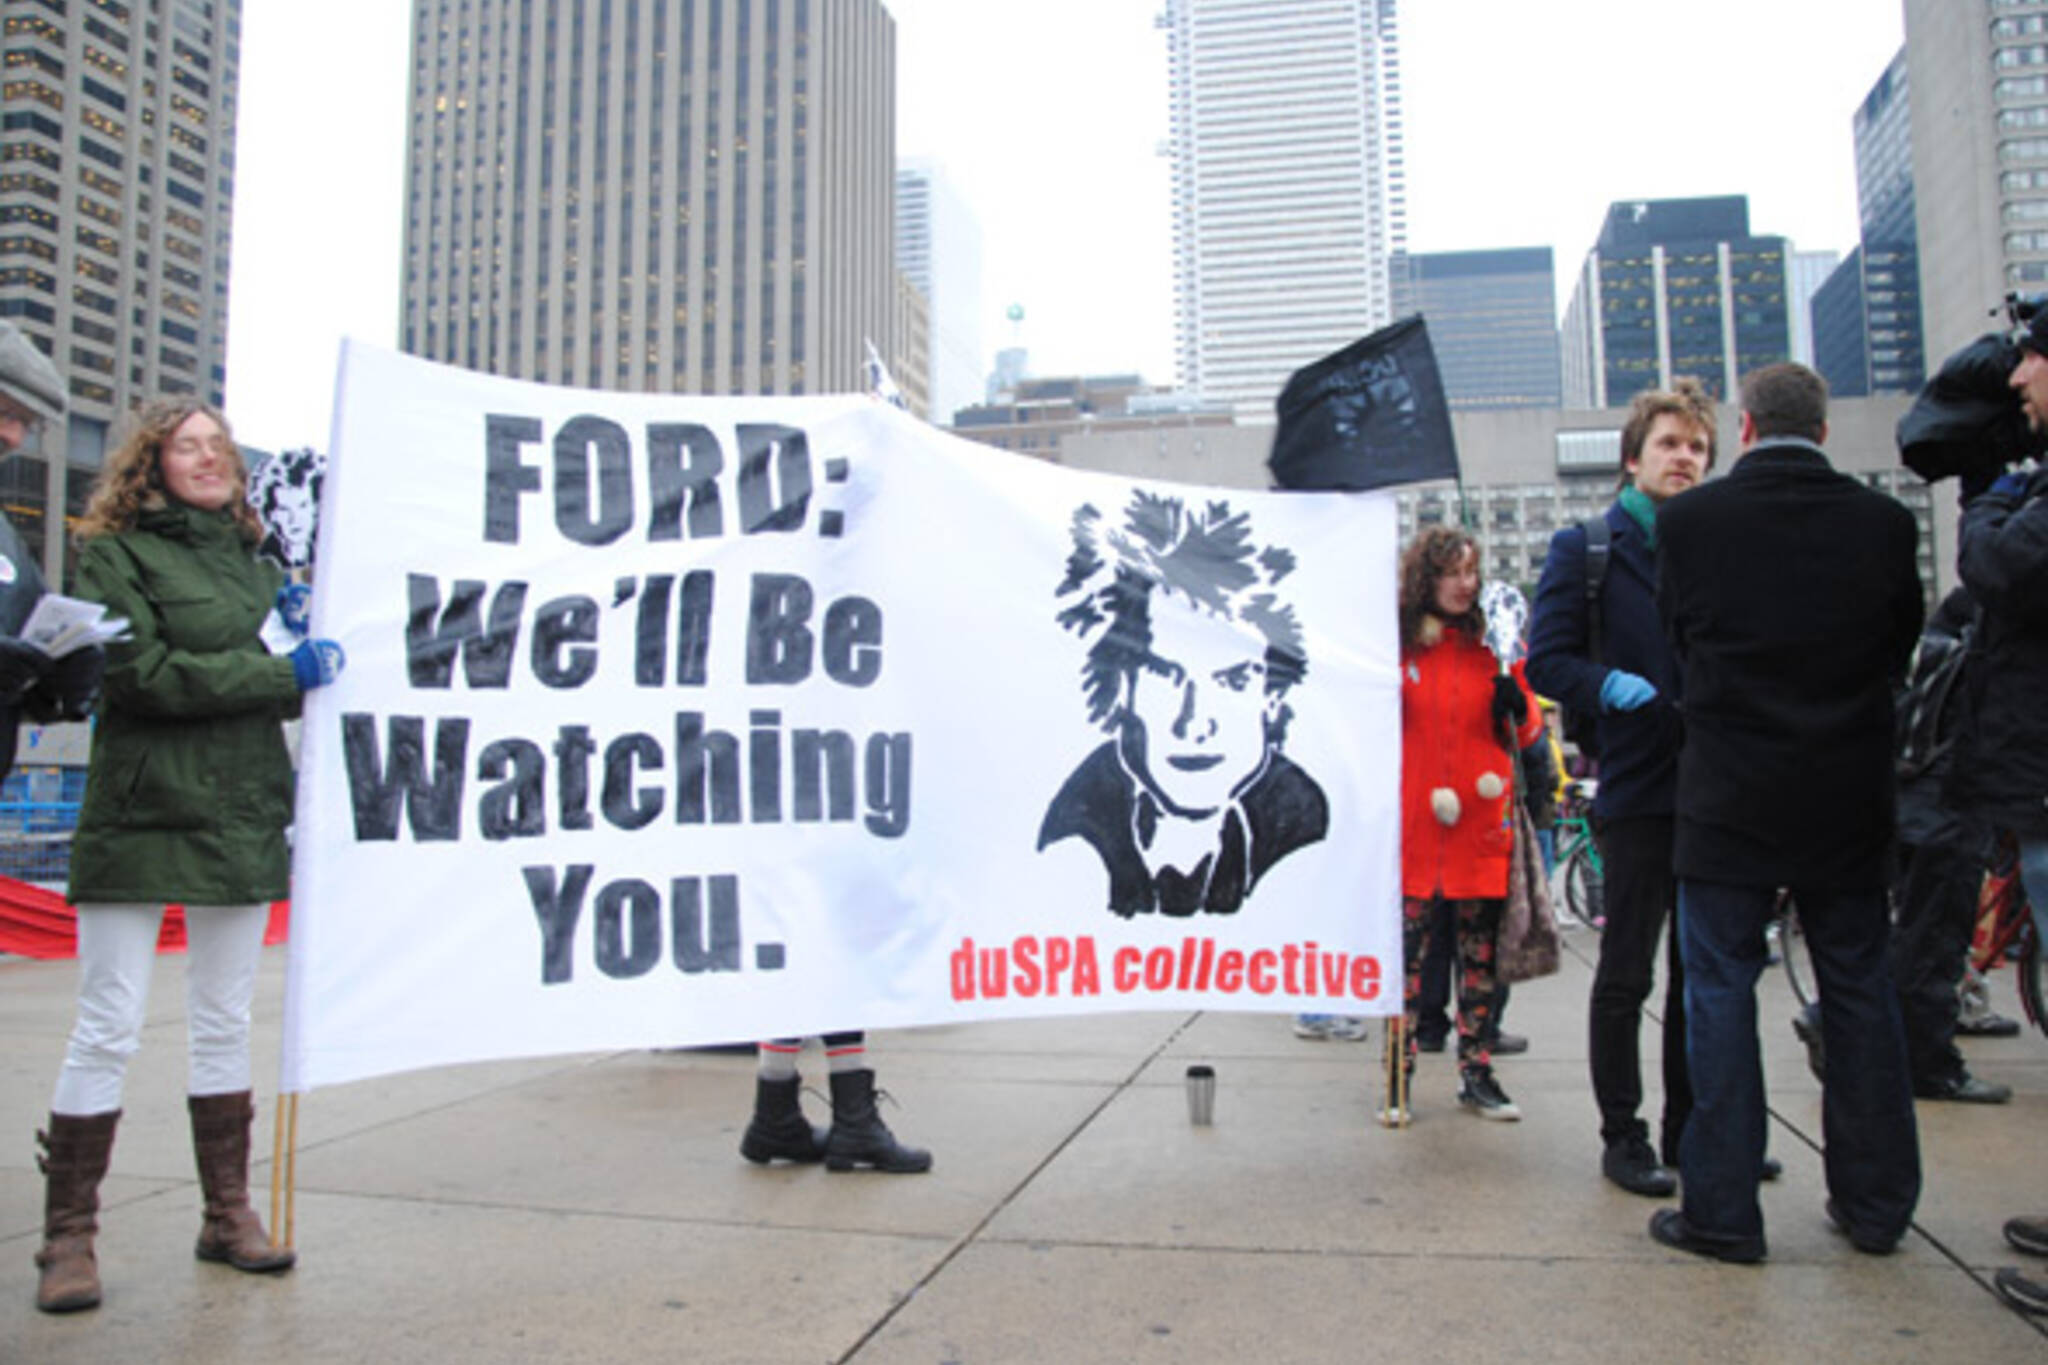 Rob Ford Protest City Hall